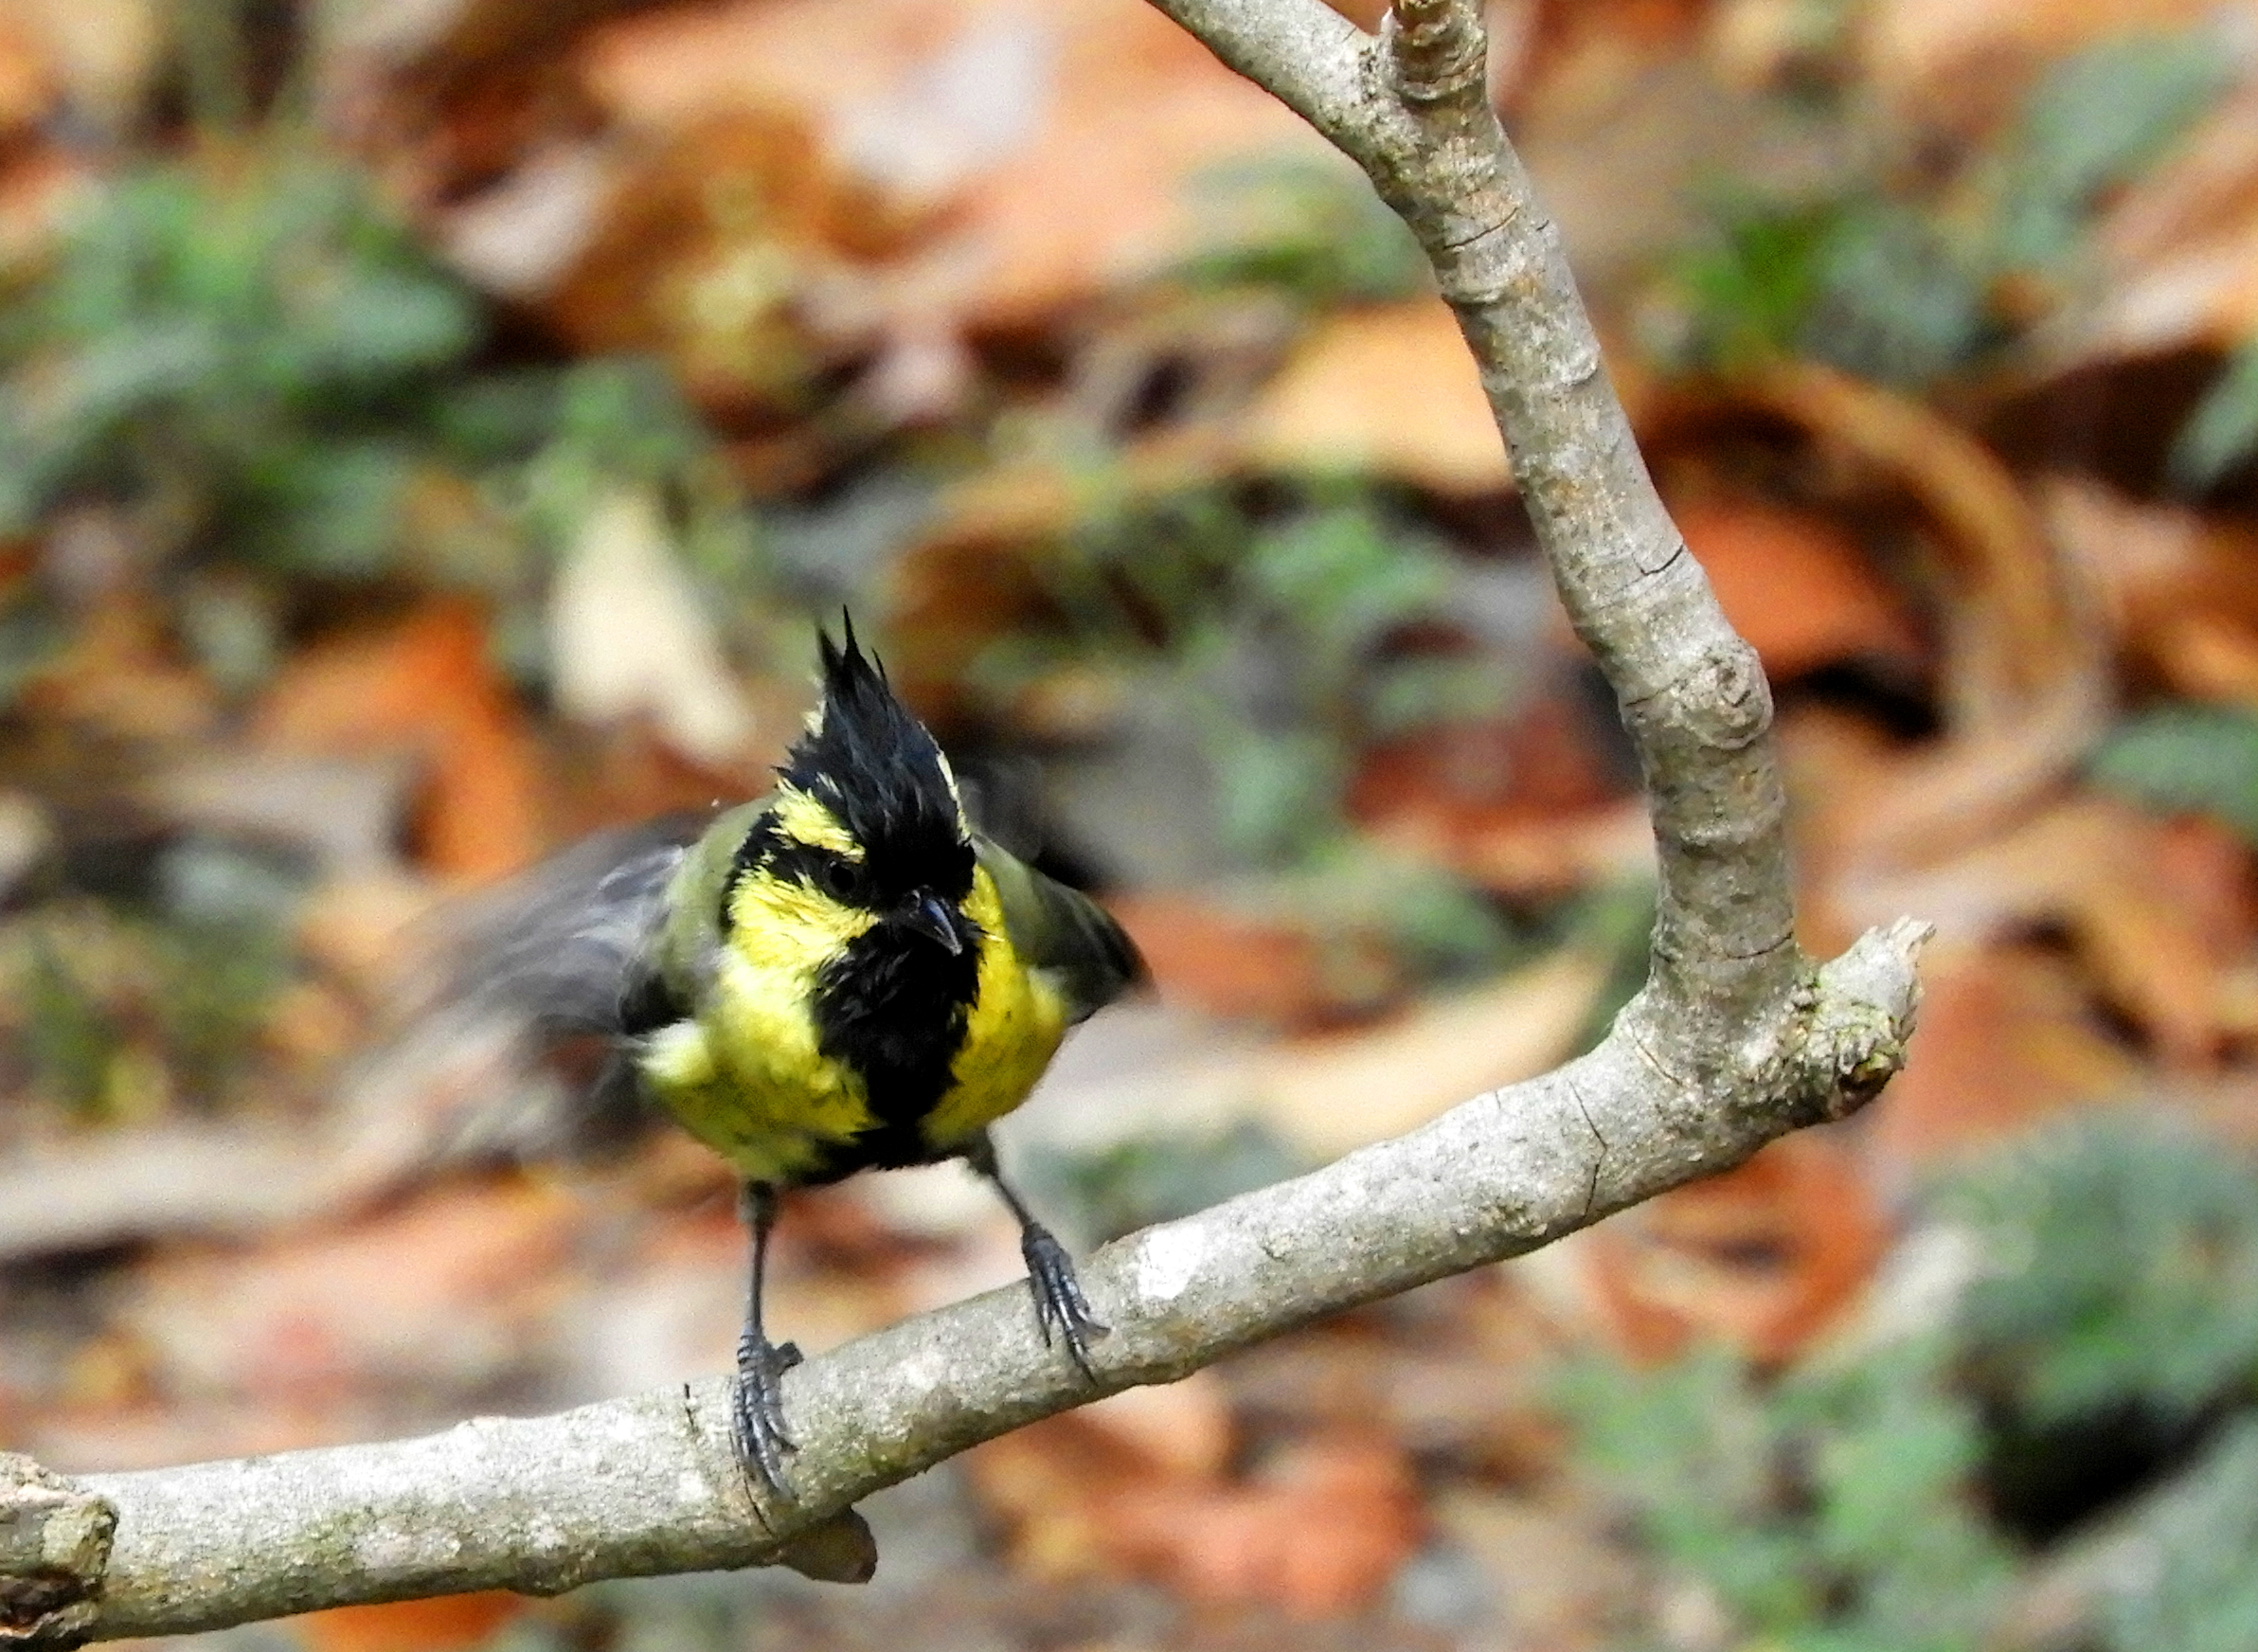 The closest relative is yellow-cheeked tit, which also has yellow tit. The Indian Black-lored Tit is a resident breeder on the Indian subcontinent.